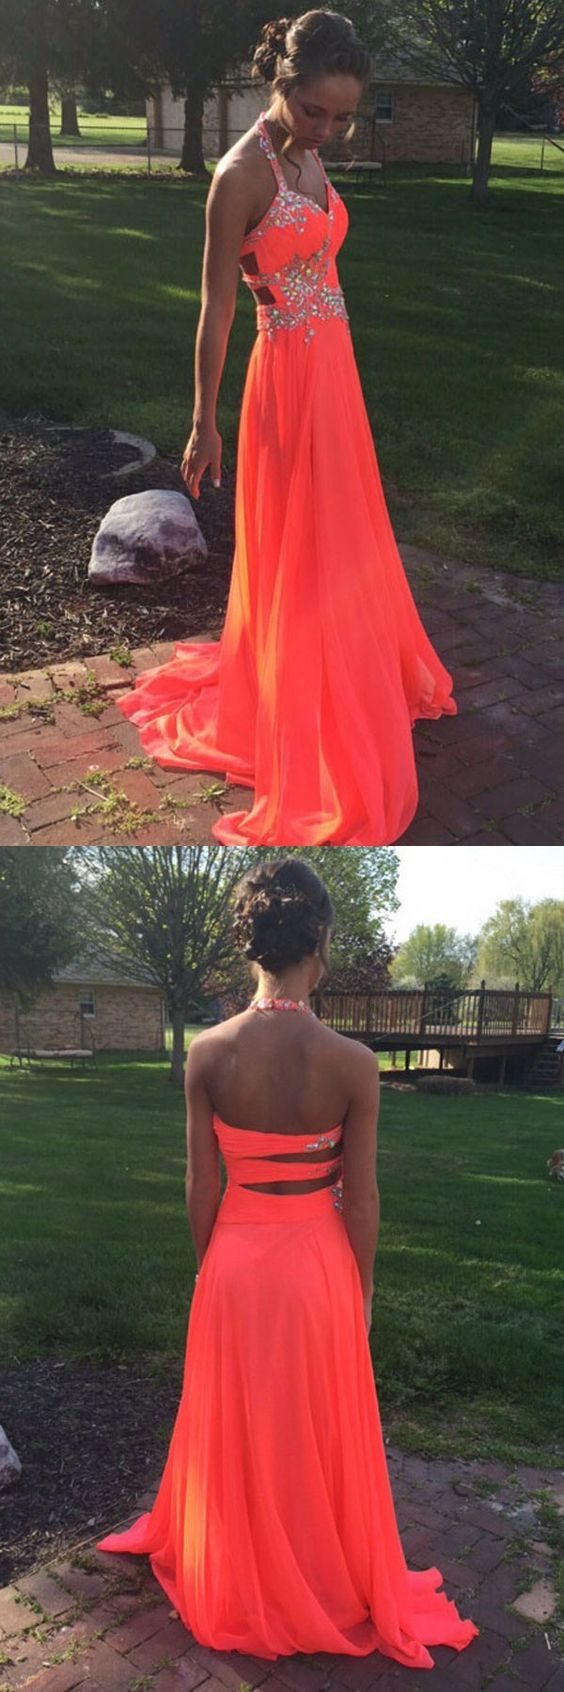 prom dresses,2017 prom dresses,orange prom dresses,halter prom dresses,backless party dresses,evening dresses,sparkling evening dresses,vestidos